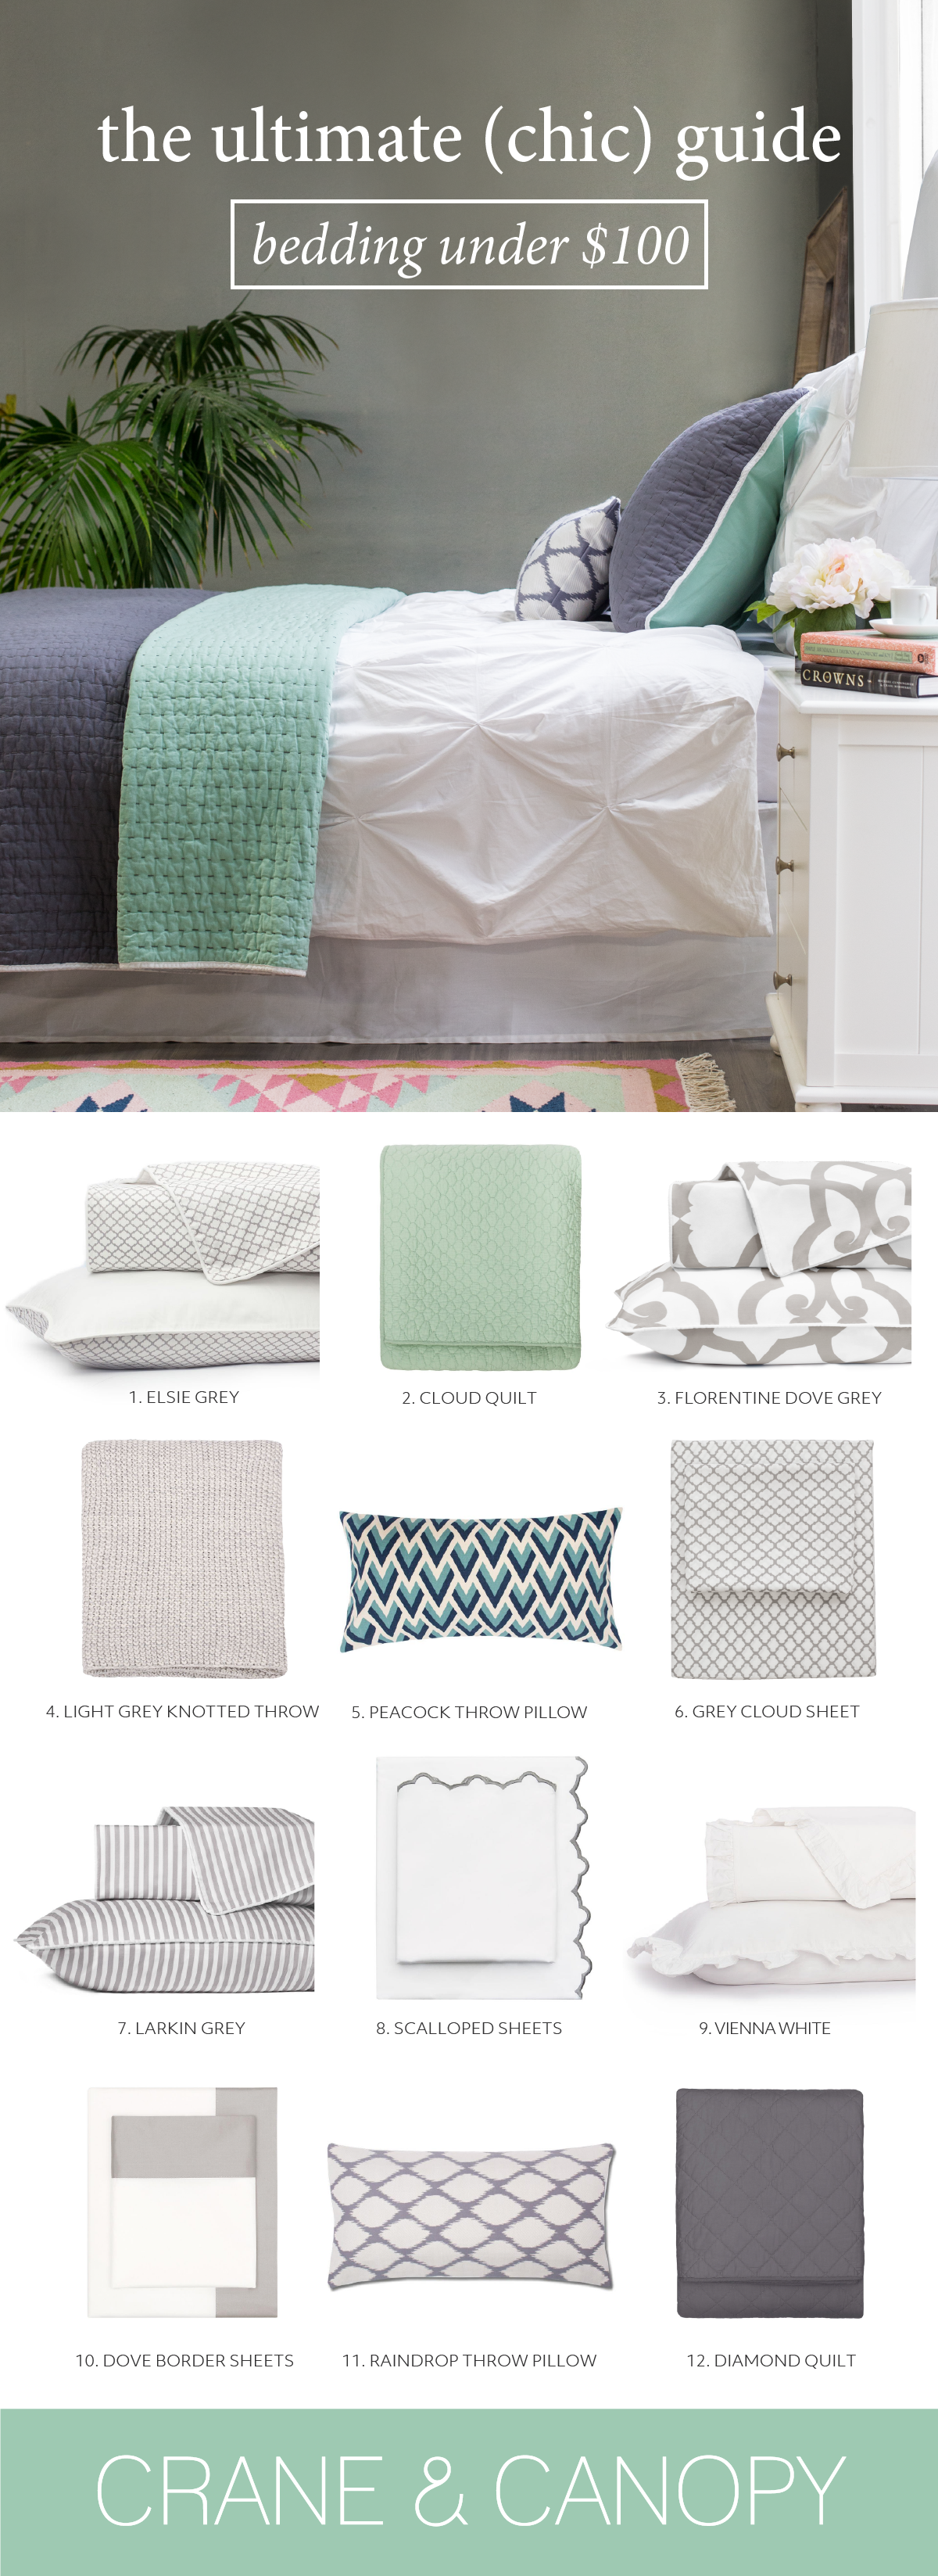 From chic bedding and luxury sheets find gorgeous bedding that fits